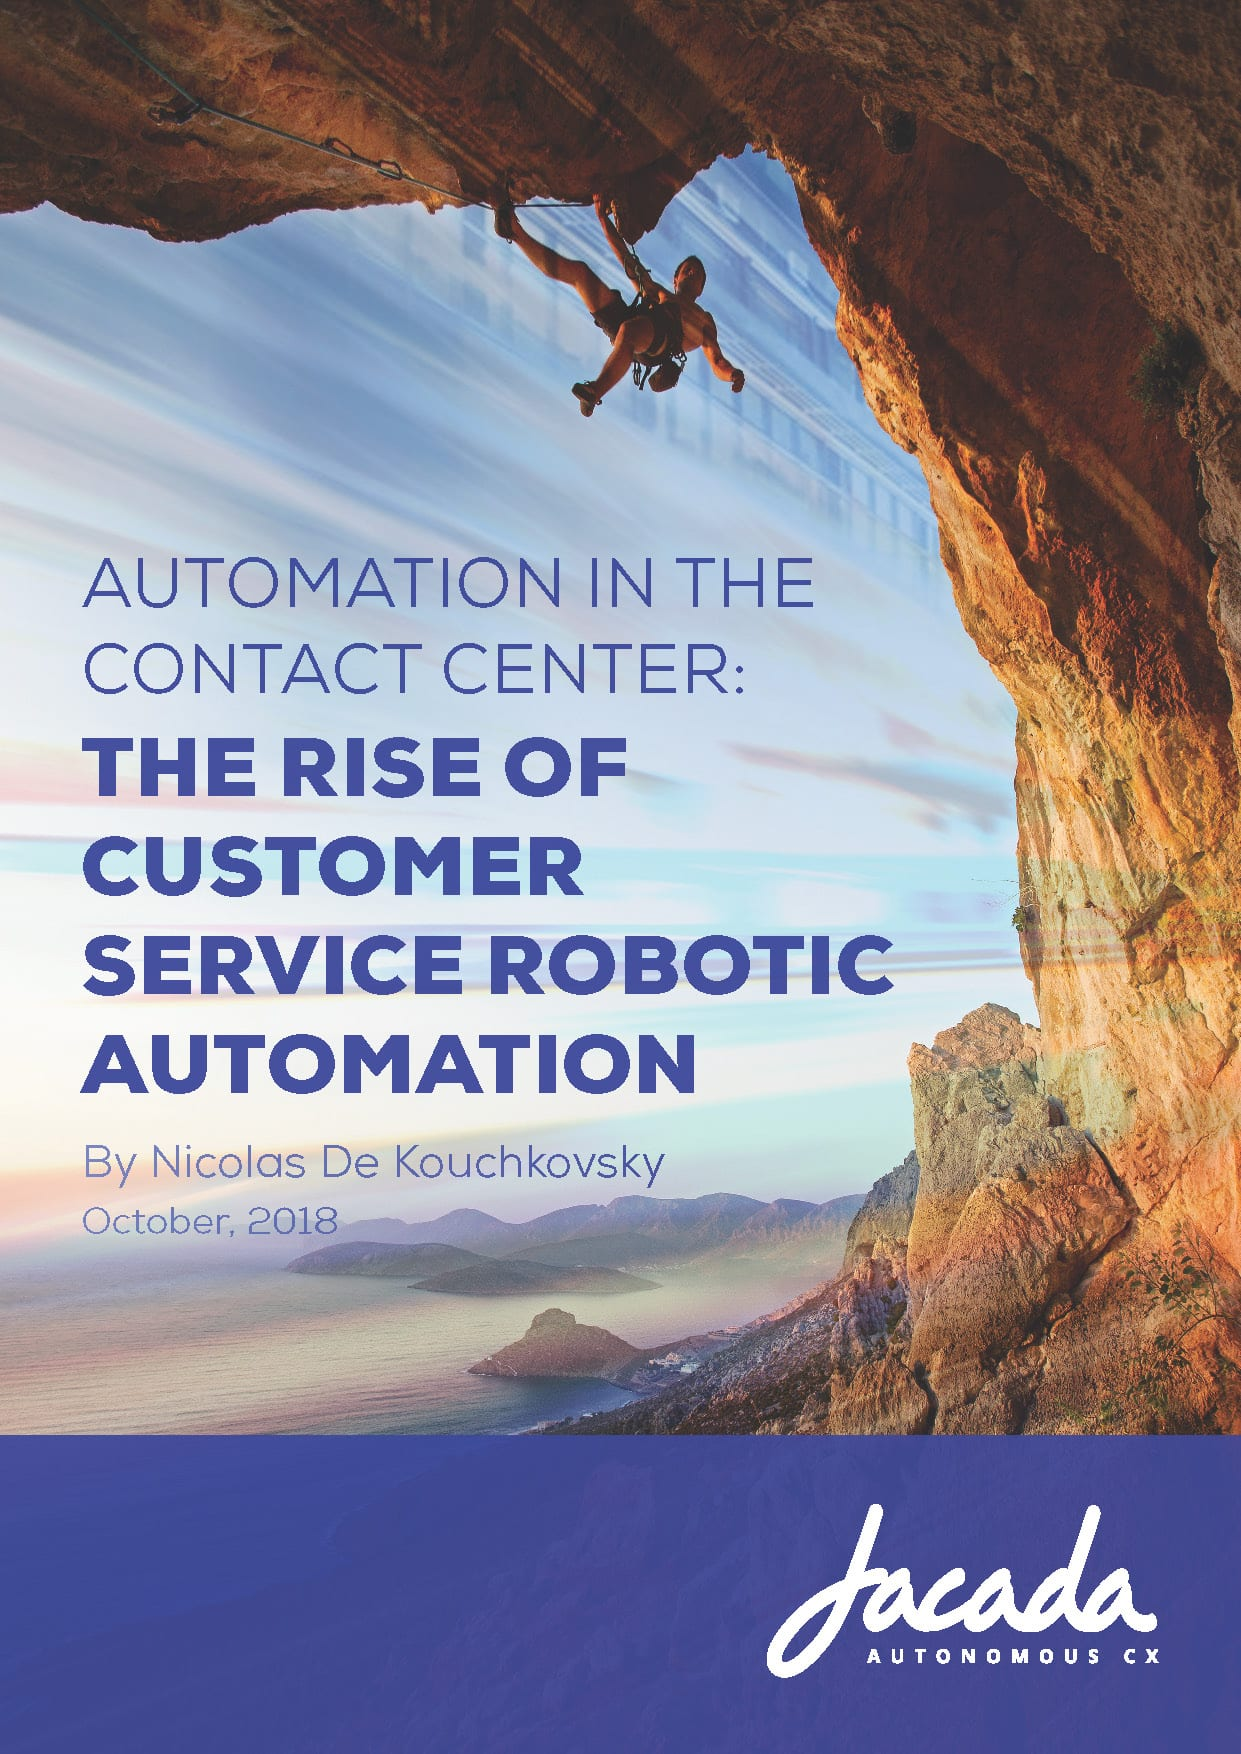 Whitepaper-The-Rise-of-Customer-Service-Robotic-Automation (1)_Page_01